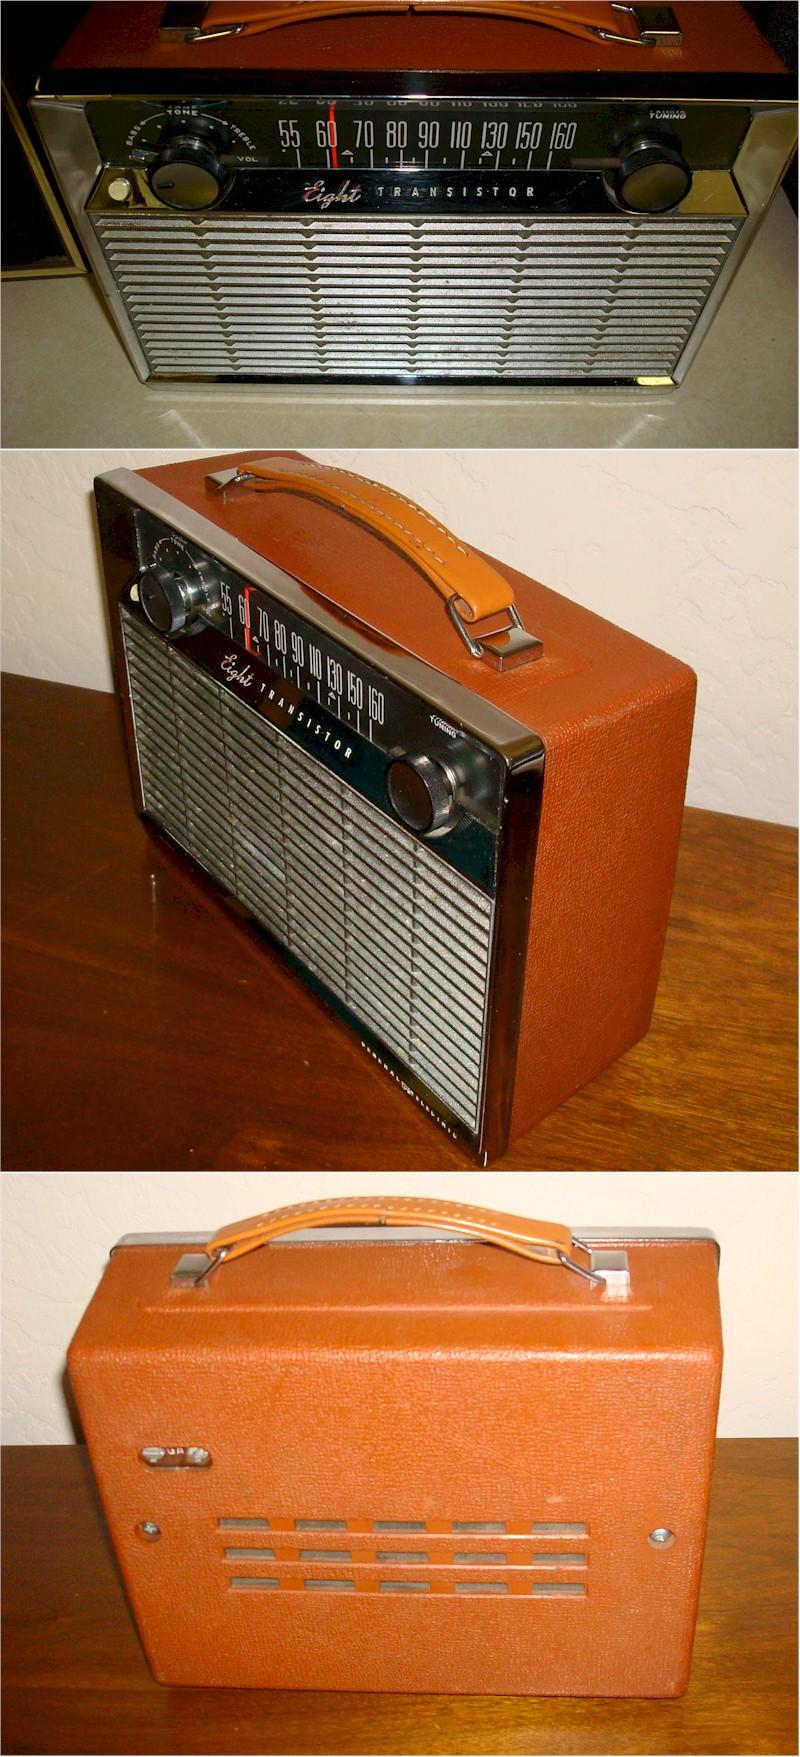 General Electric PE-780 Portable (1960)